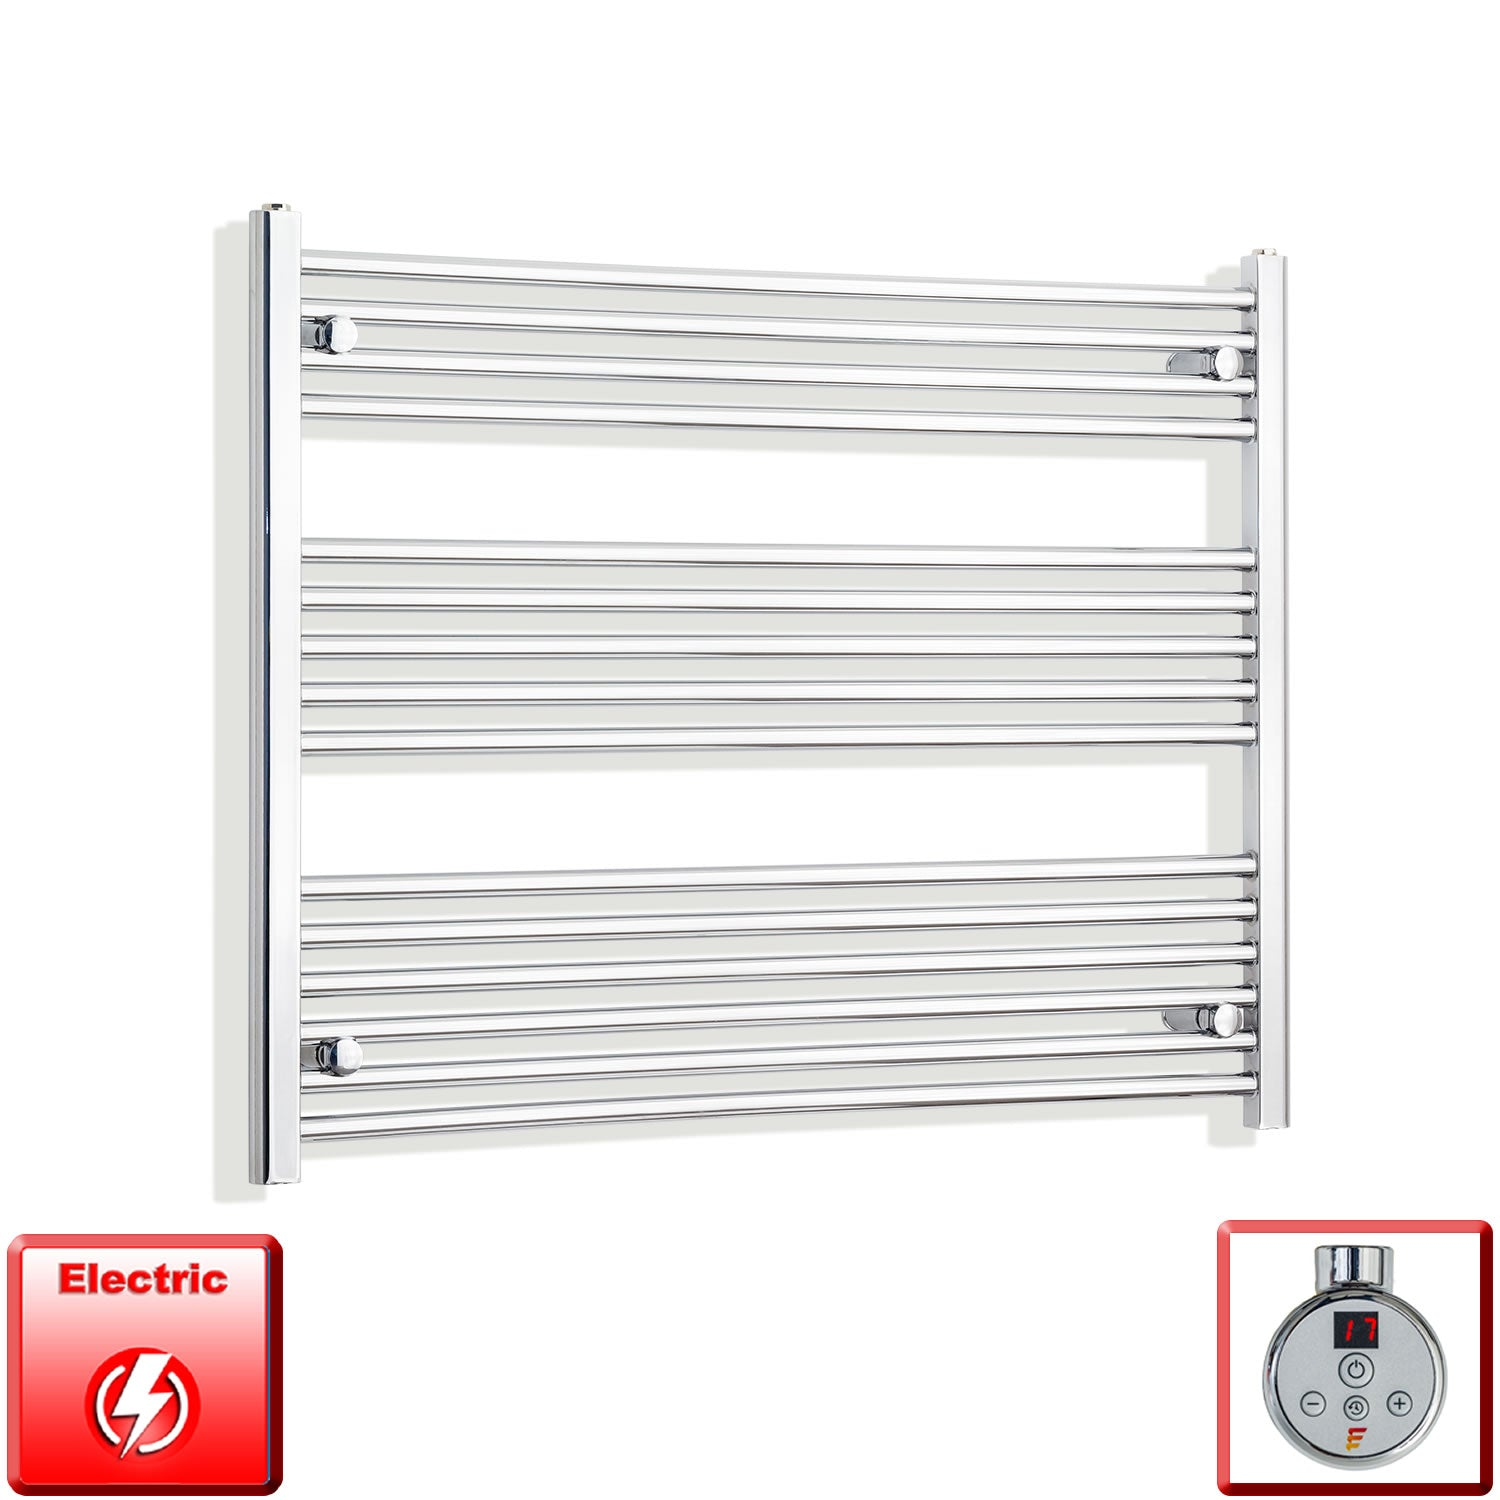 1000mm Wide 800mm High Pre-Filled Chrome Electric Towel Rail Radiator With Thermostatic DIGI Element